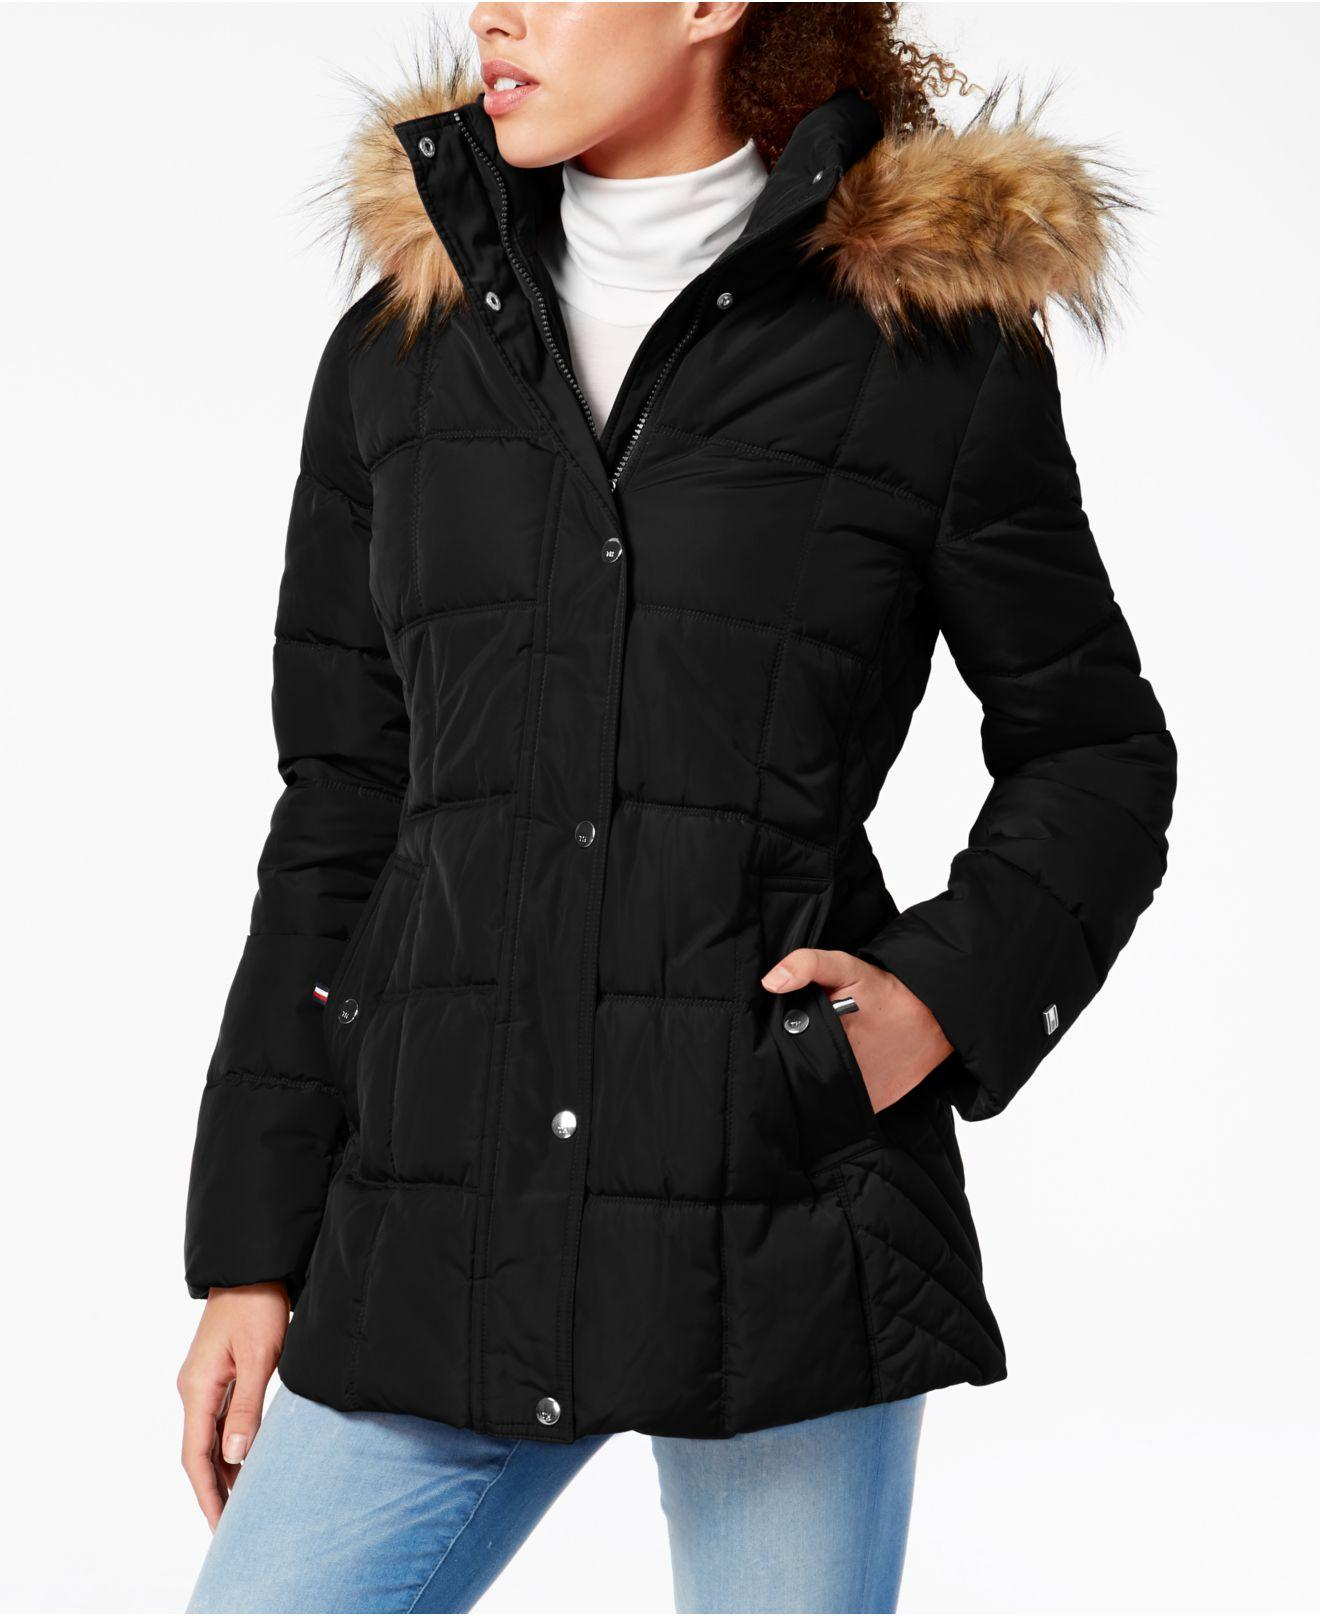 Tommy Hilfiger womens Mid Length Hooded Puffer Jacket With Faux Fur Trimmed Hood Parka